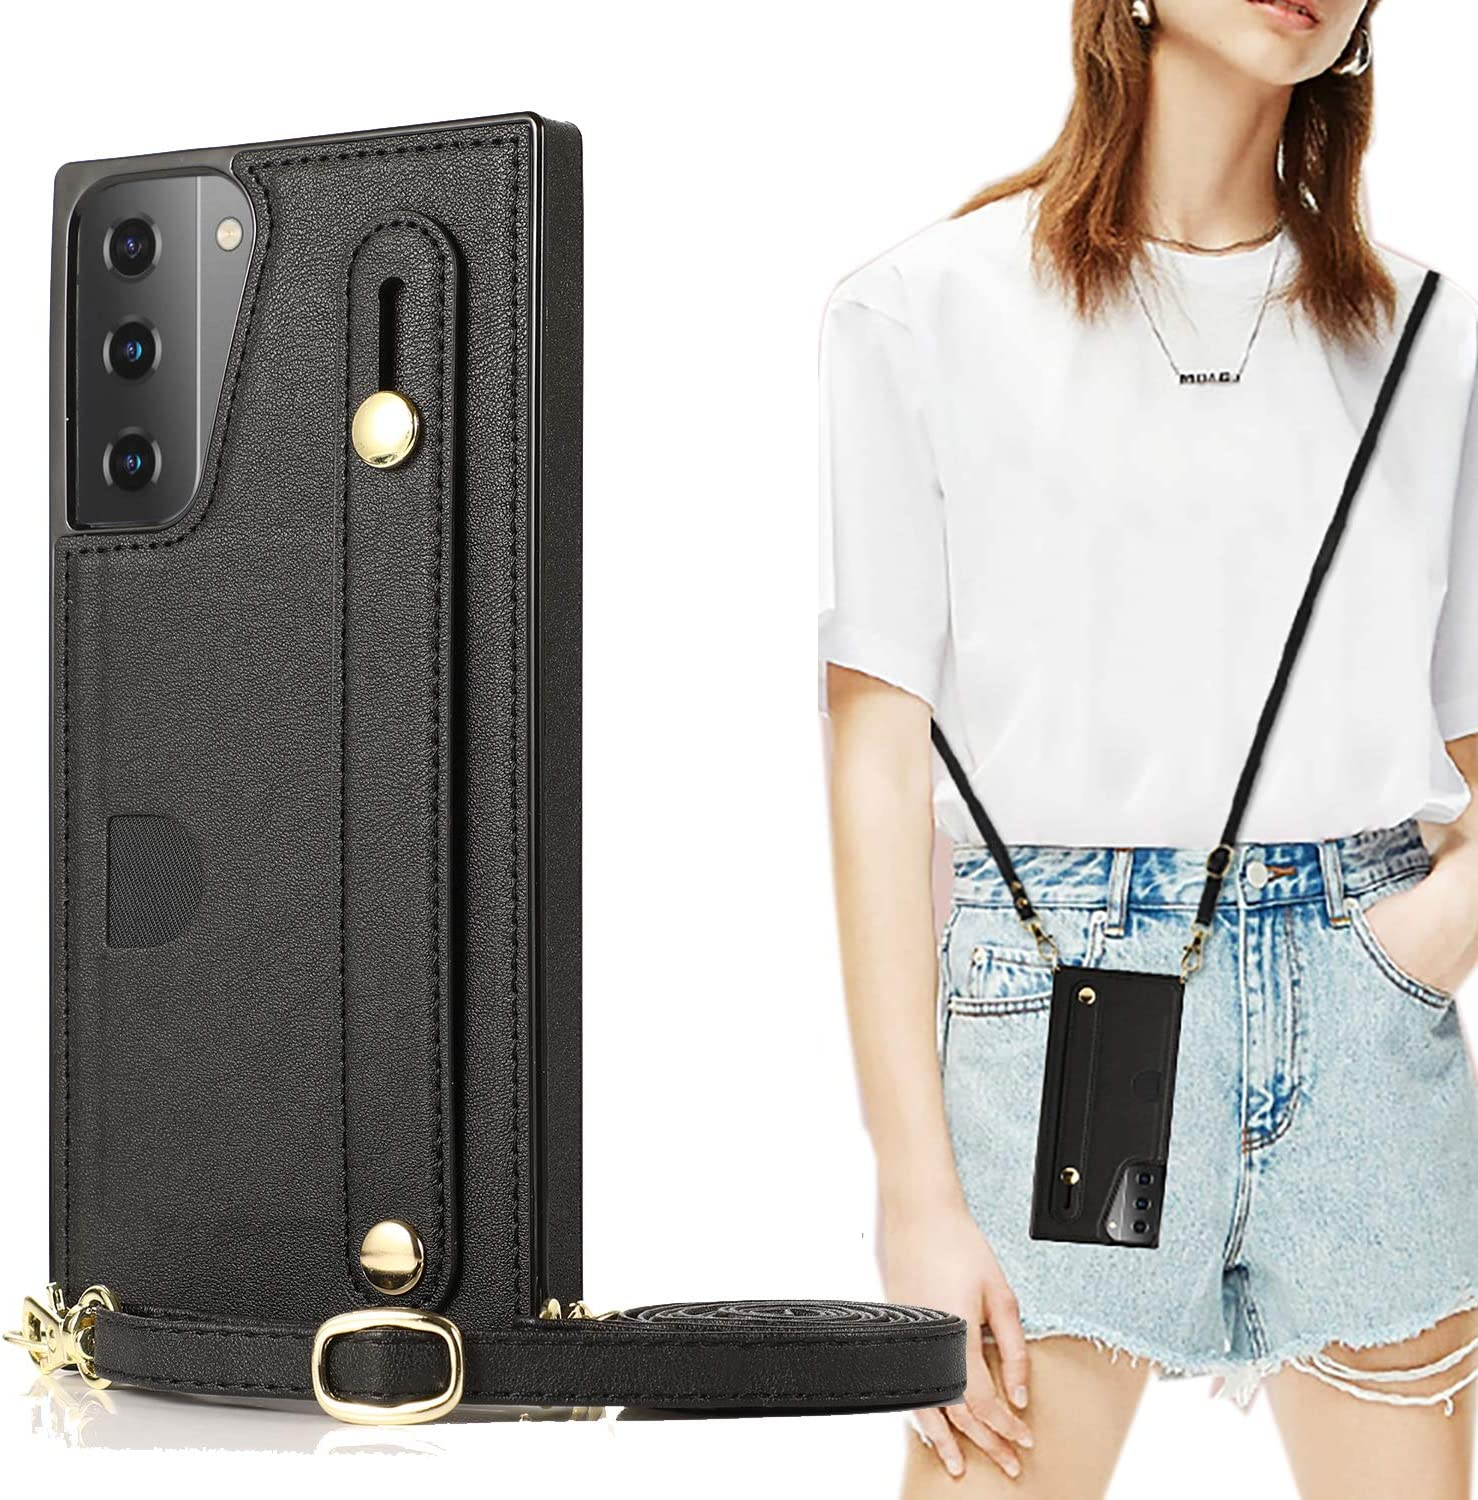 Samsung Galaxy S21 Plus Wallet Case,CCSmall Removable Adjustable Leather Strap Crossbody Card Holders Case Neck Strap Lanyard Purse Shoulder Strap Purse Case for Samsung Galaxy S21 Plus 5G KB Black